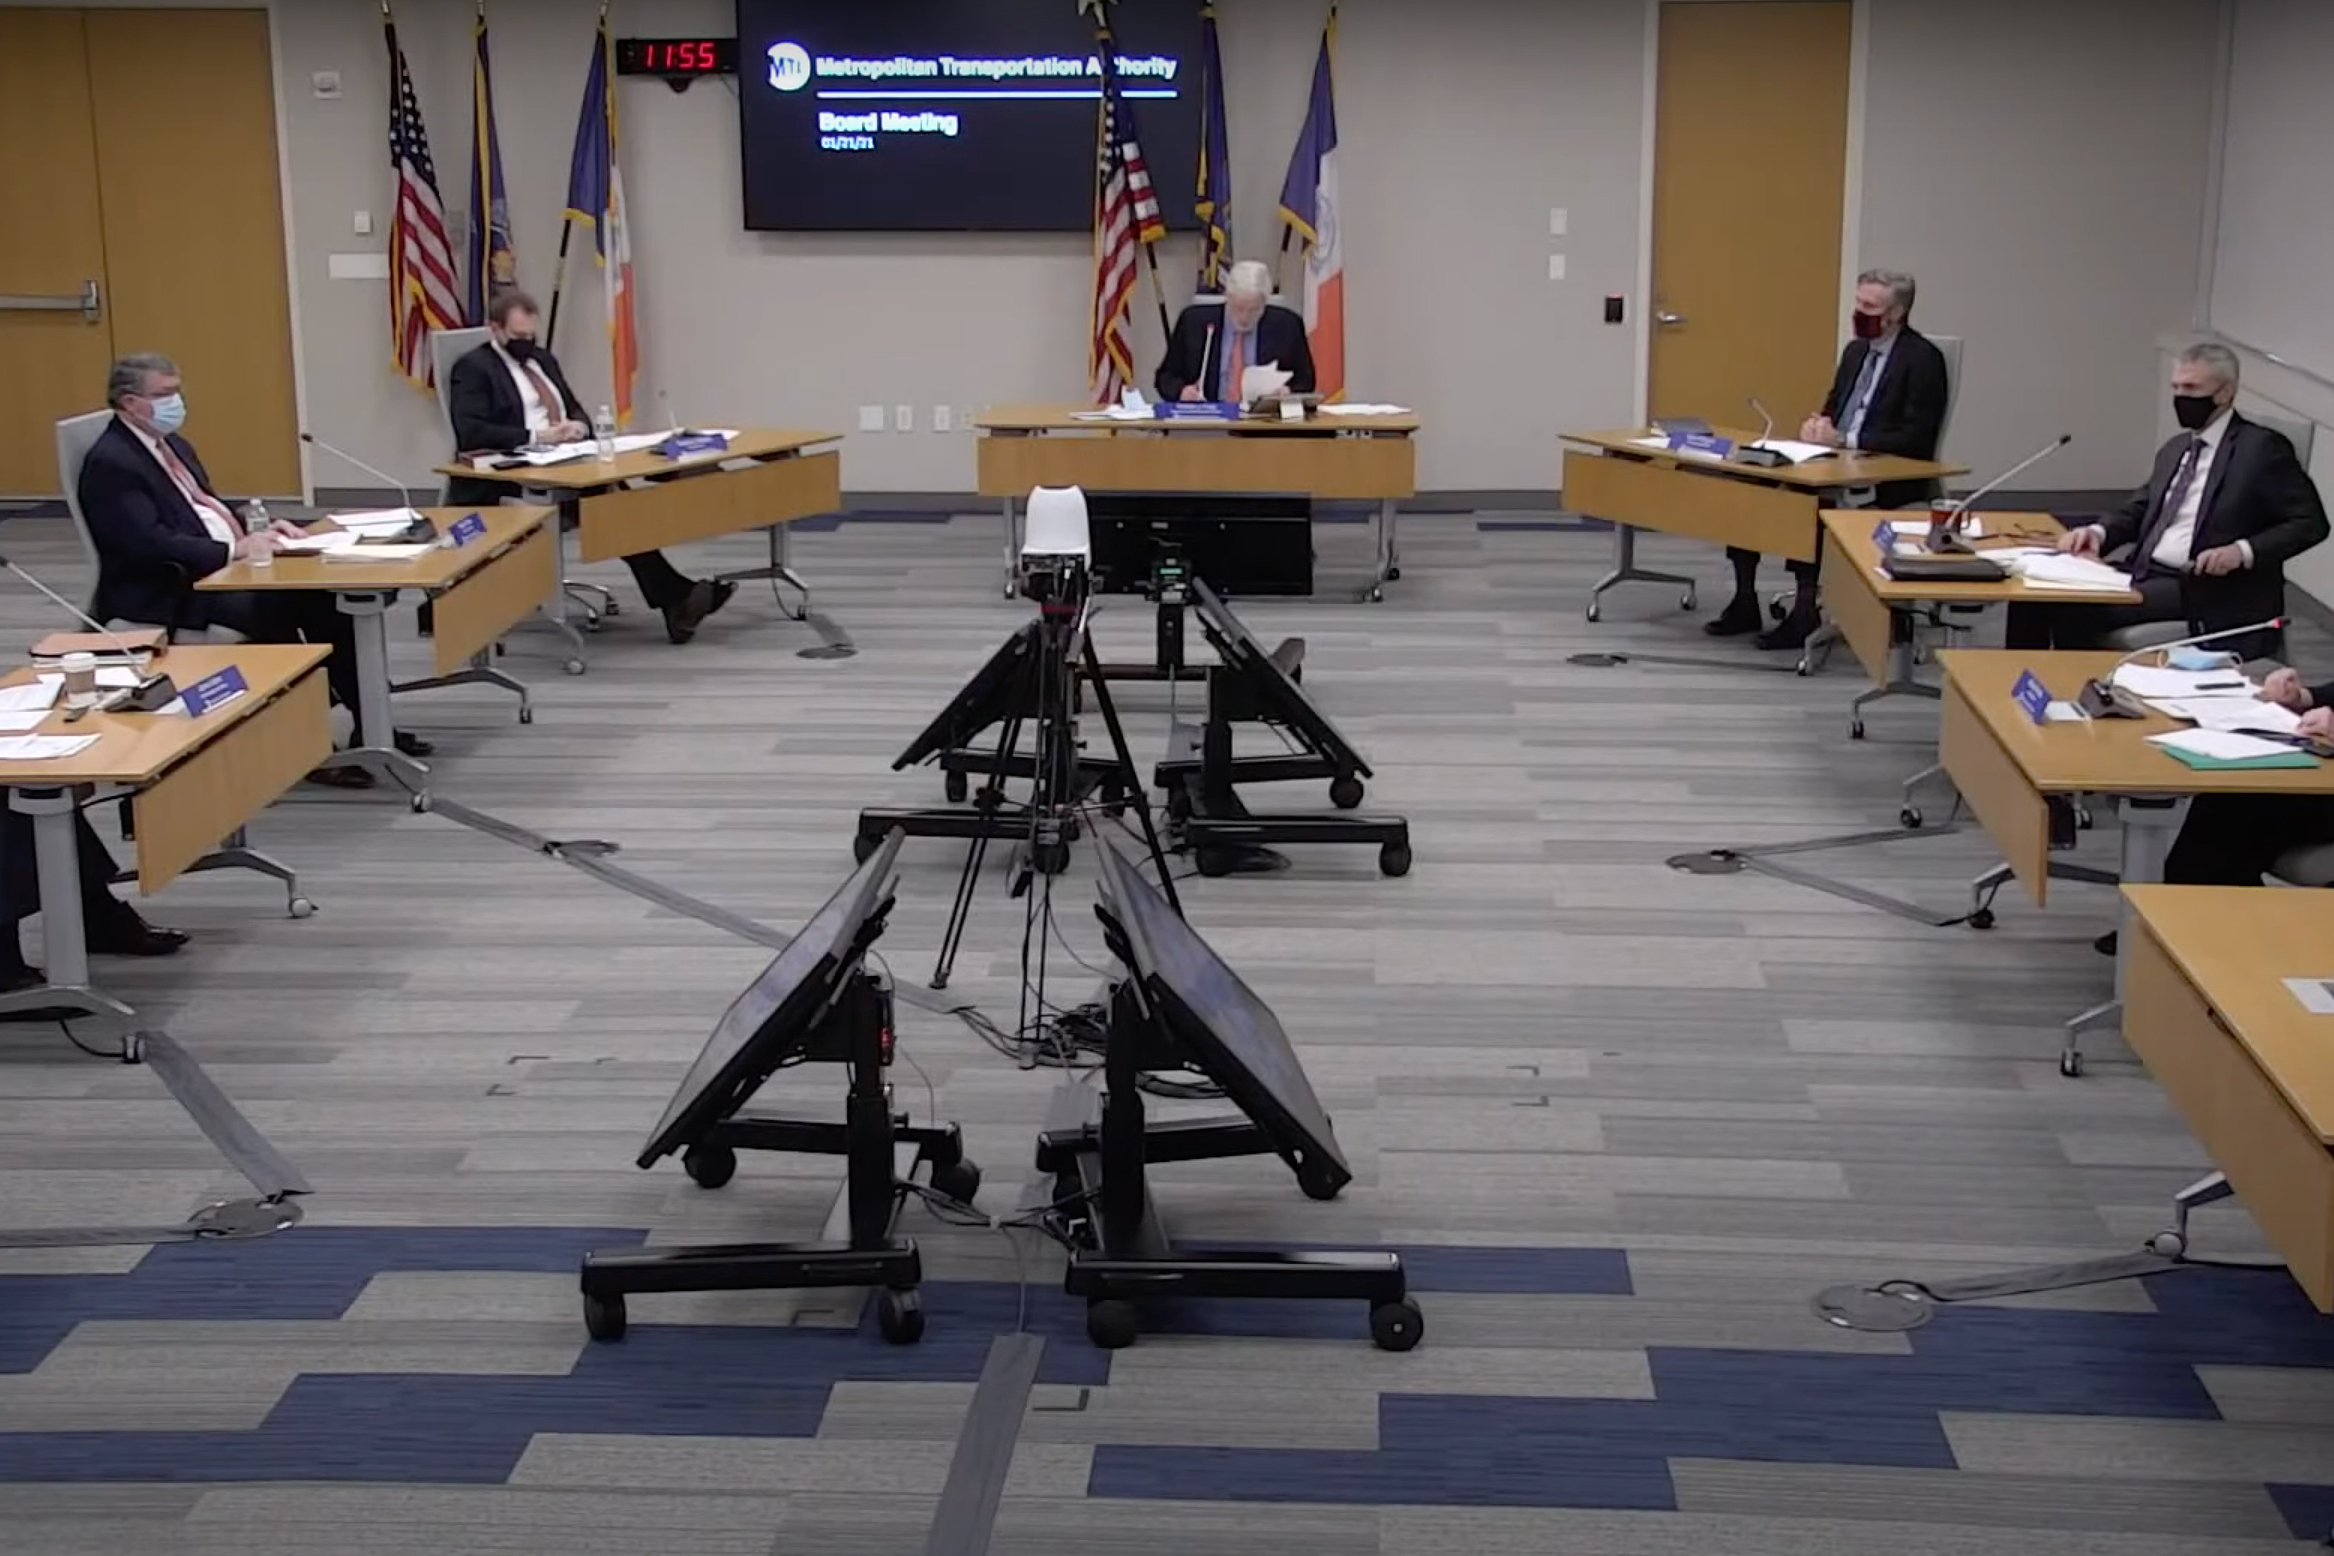 The MTA board held its first meeting of 2021 on Jan. 21.